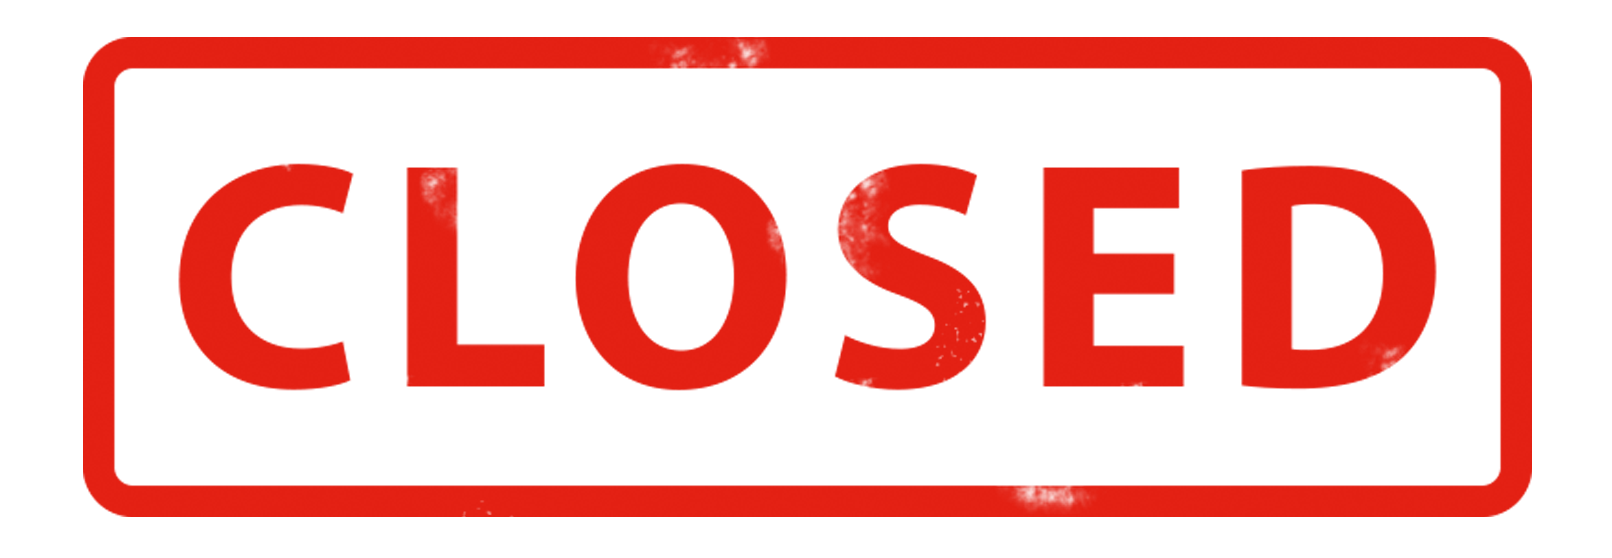 Image result for closed